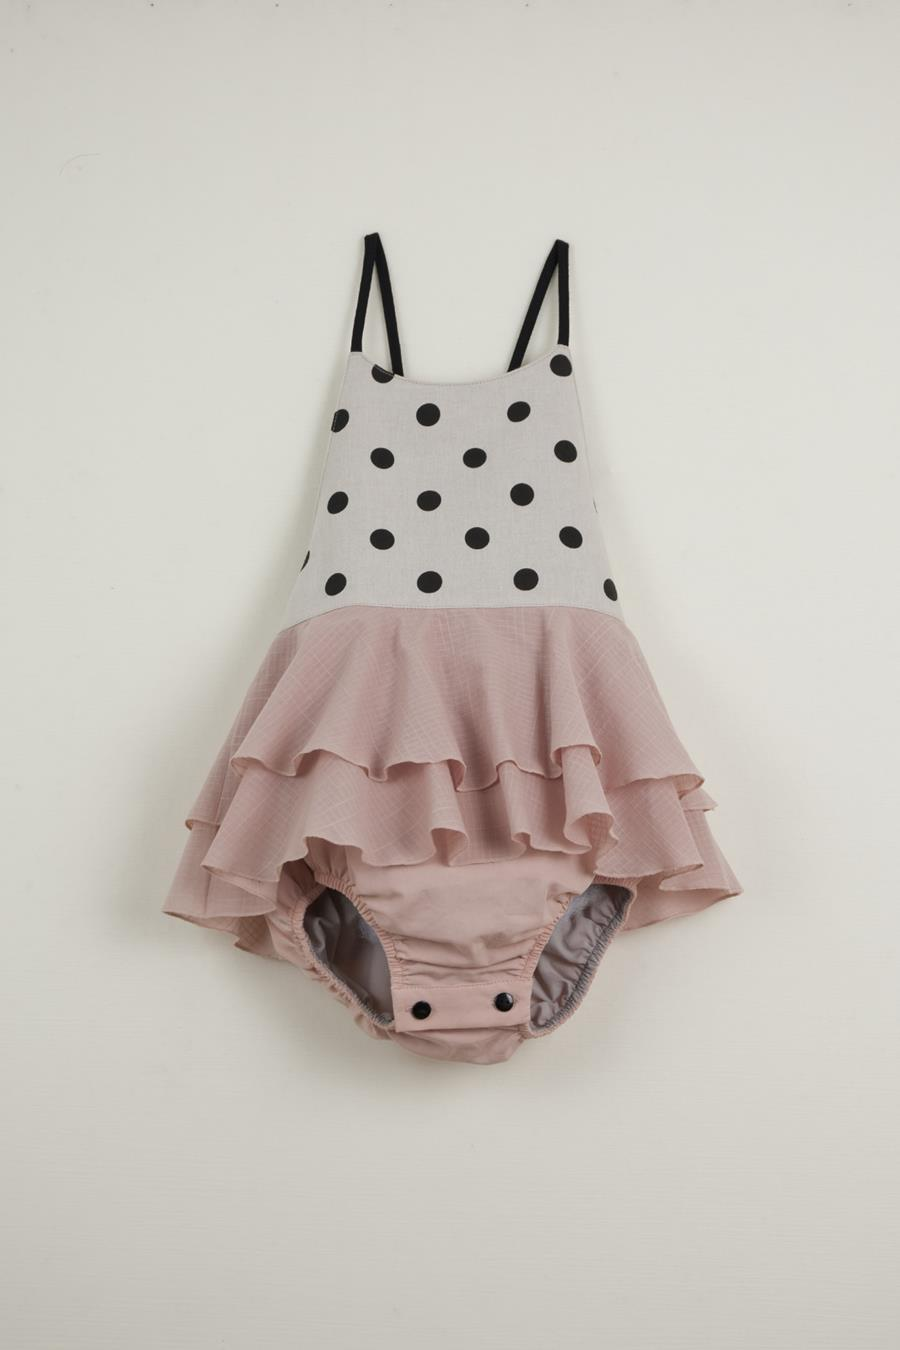 Mod.2.1 - Black polka dot romper suit with frill | SS20Mod.2.1 - Black polka dot romper suit with frill